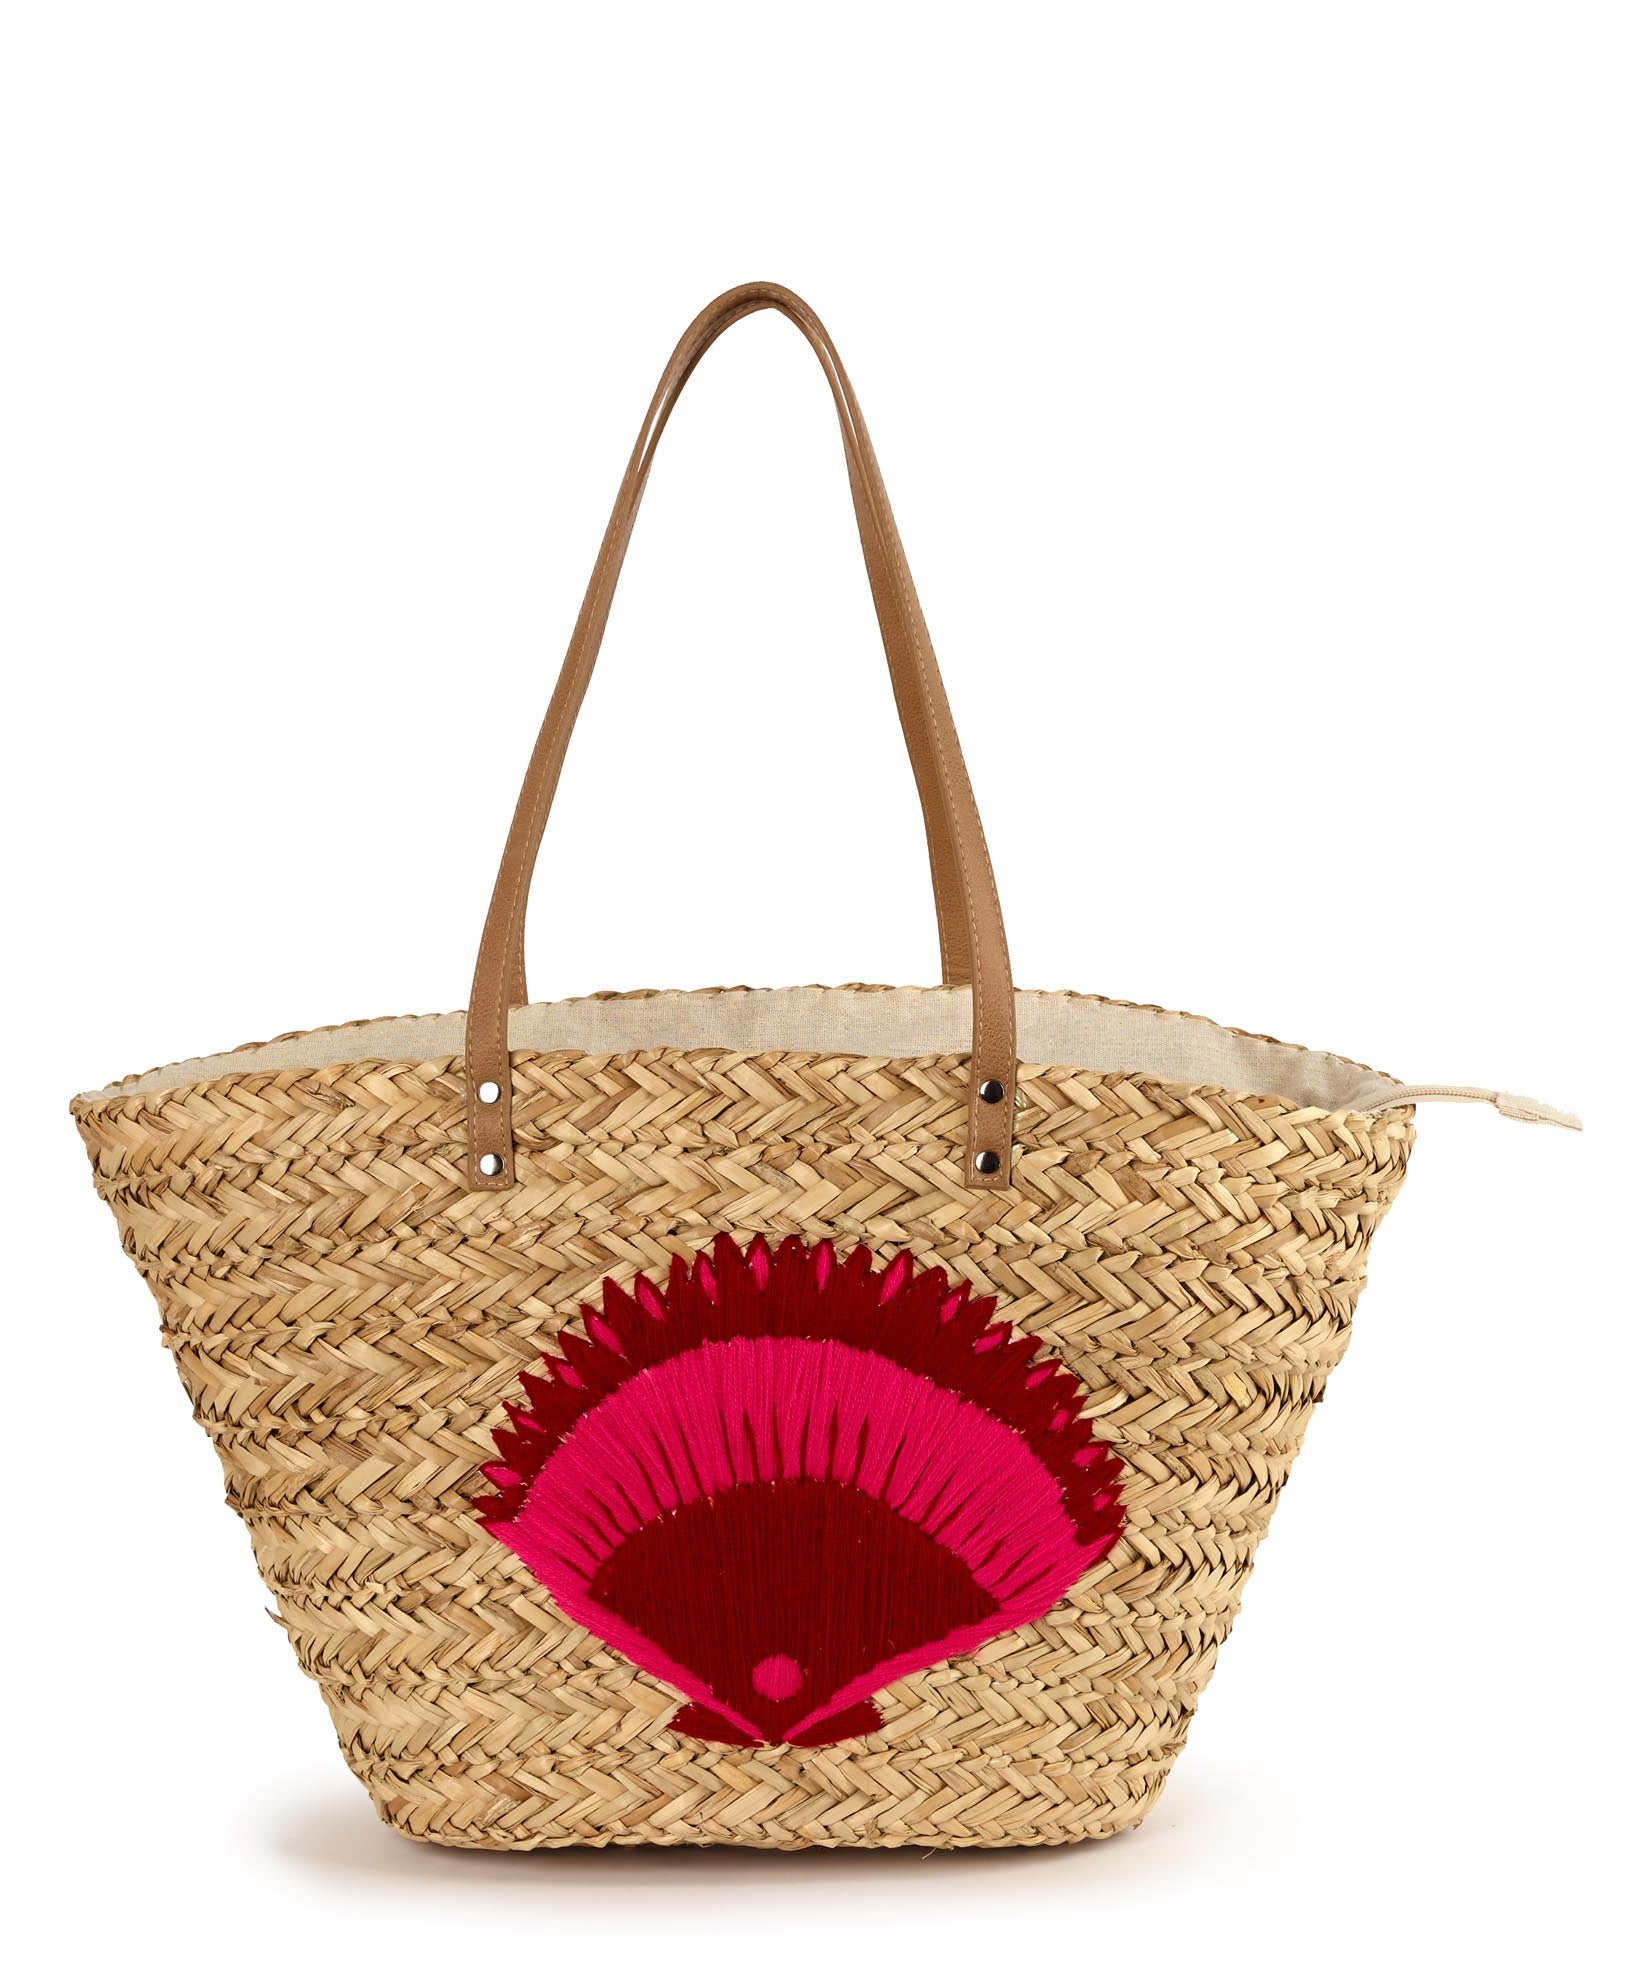 Crimson - Under The Sea Straw Bag